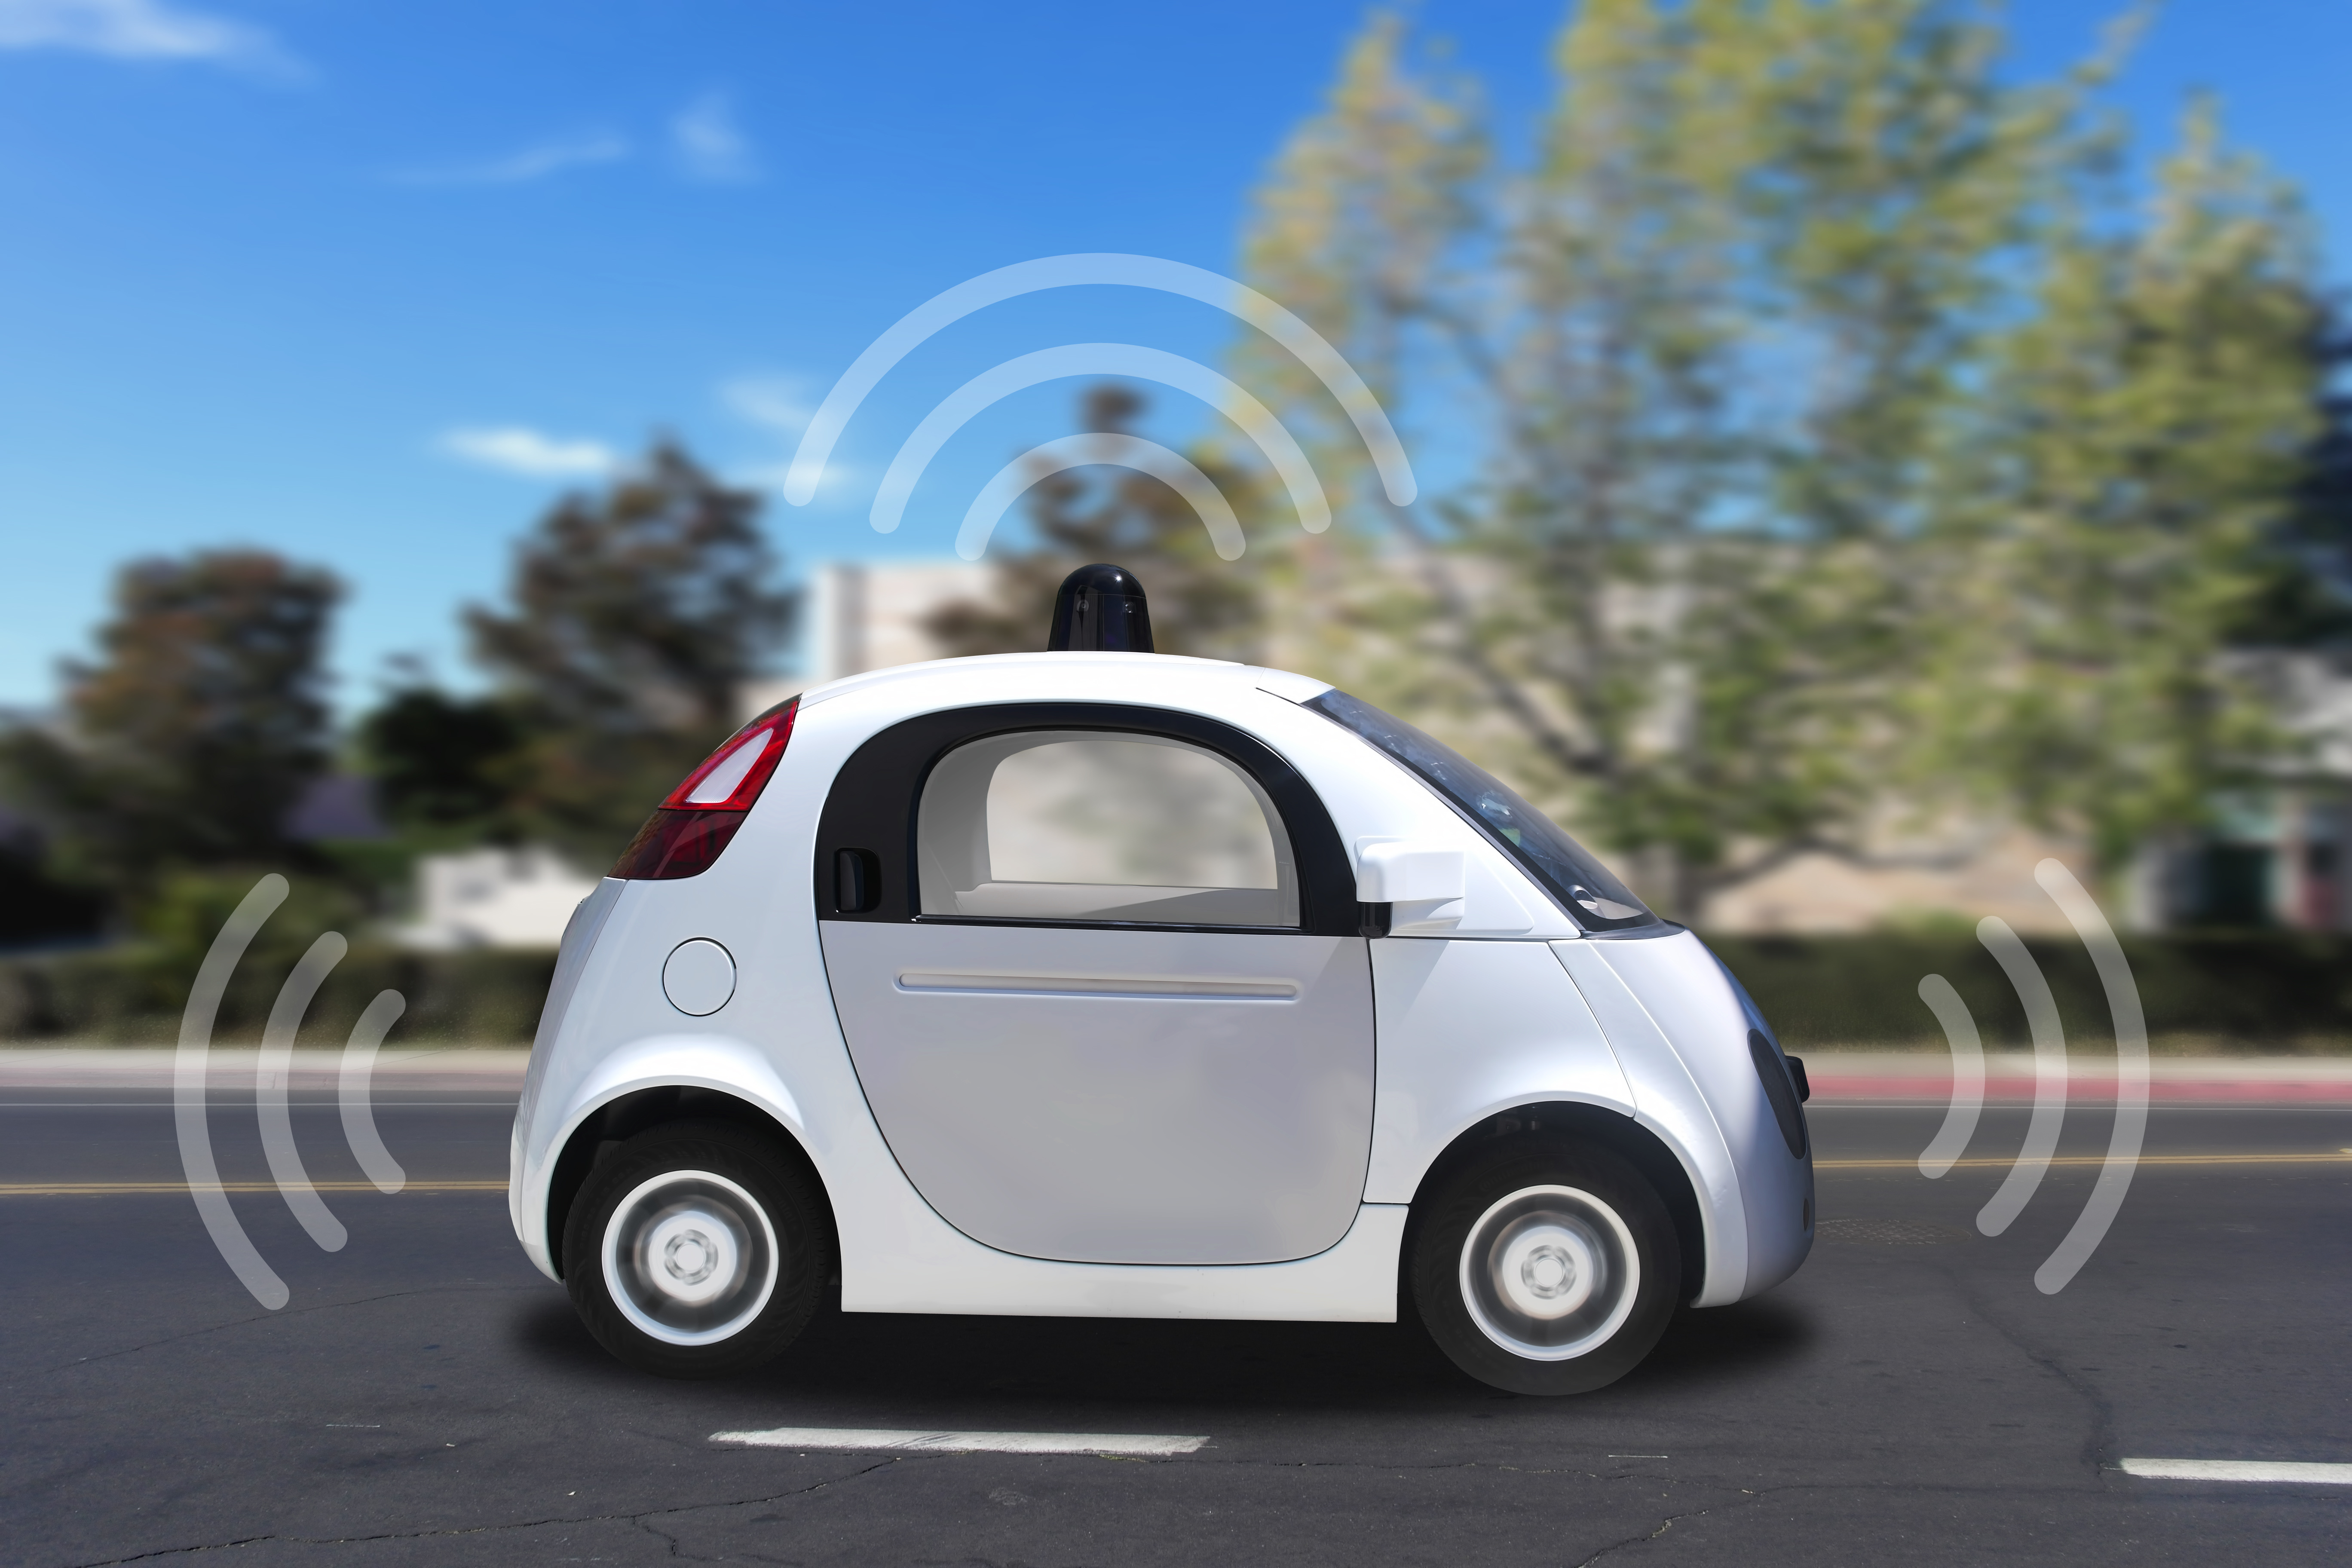 Google Patents Technology for Driverless Cars to Detect Emergency Services and Respond